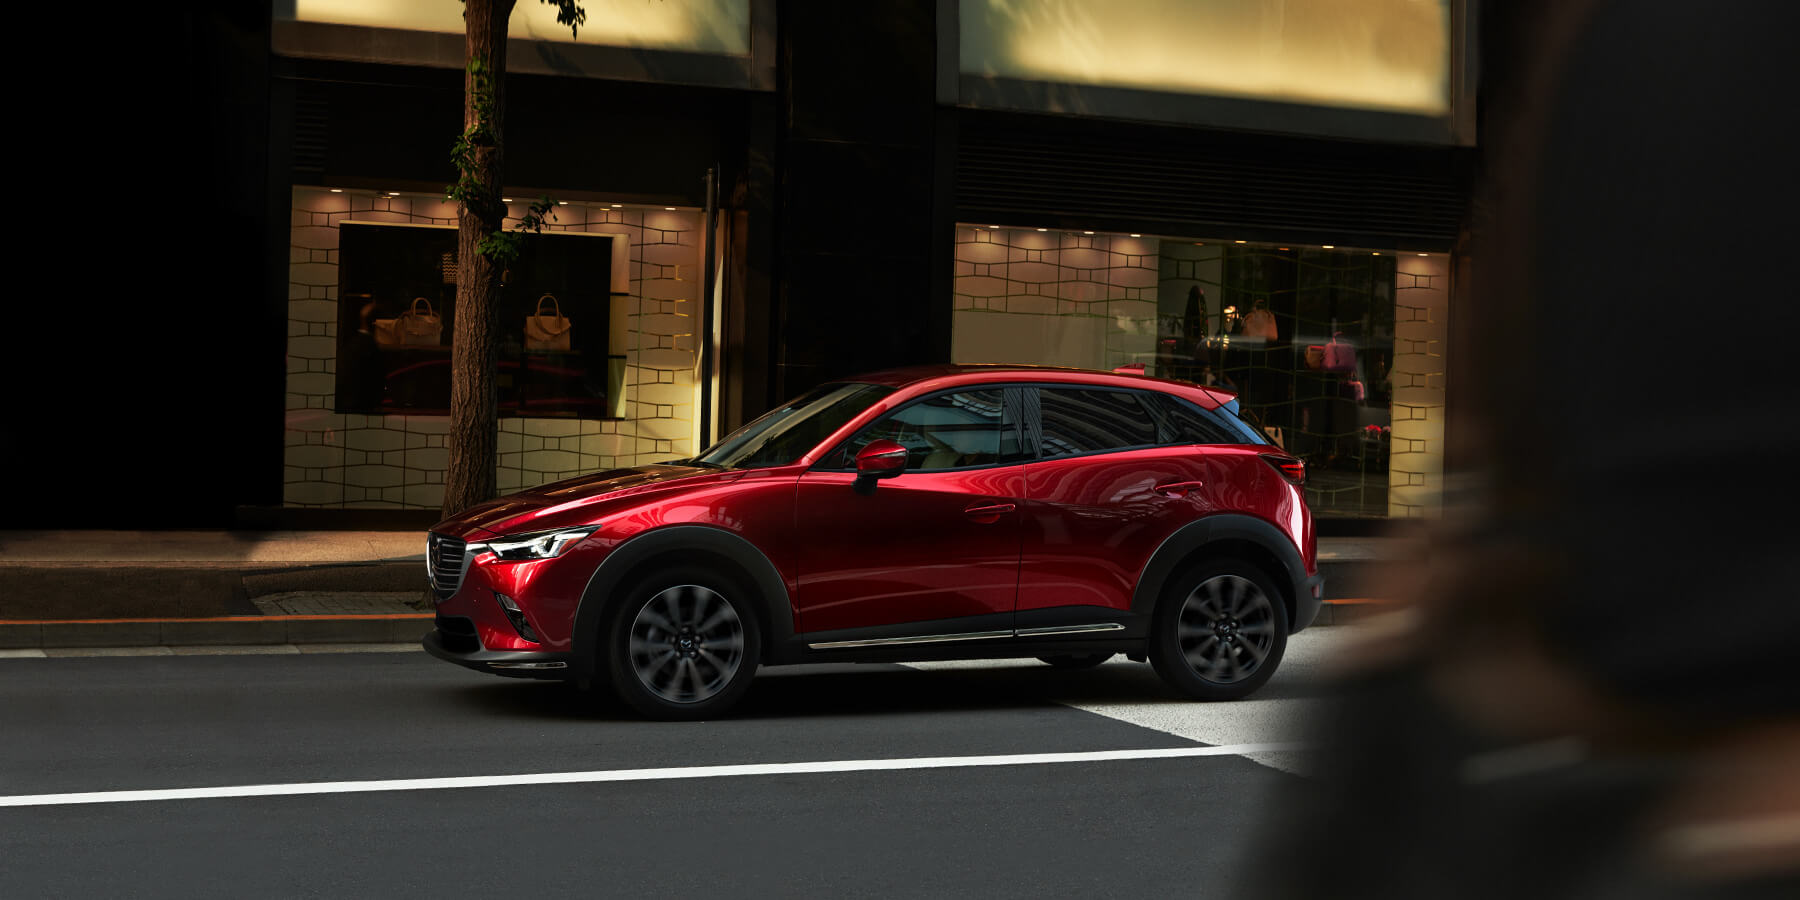 New Mazda CX-3 R 2.0L AWD 6MT I-STOP